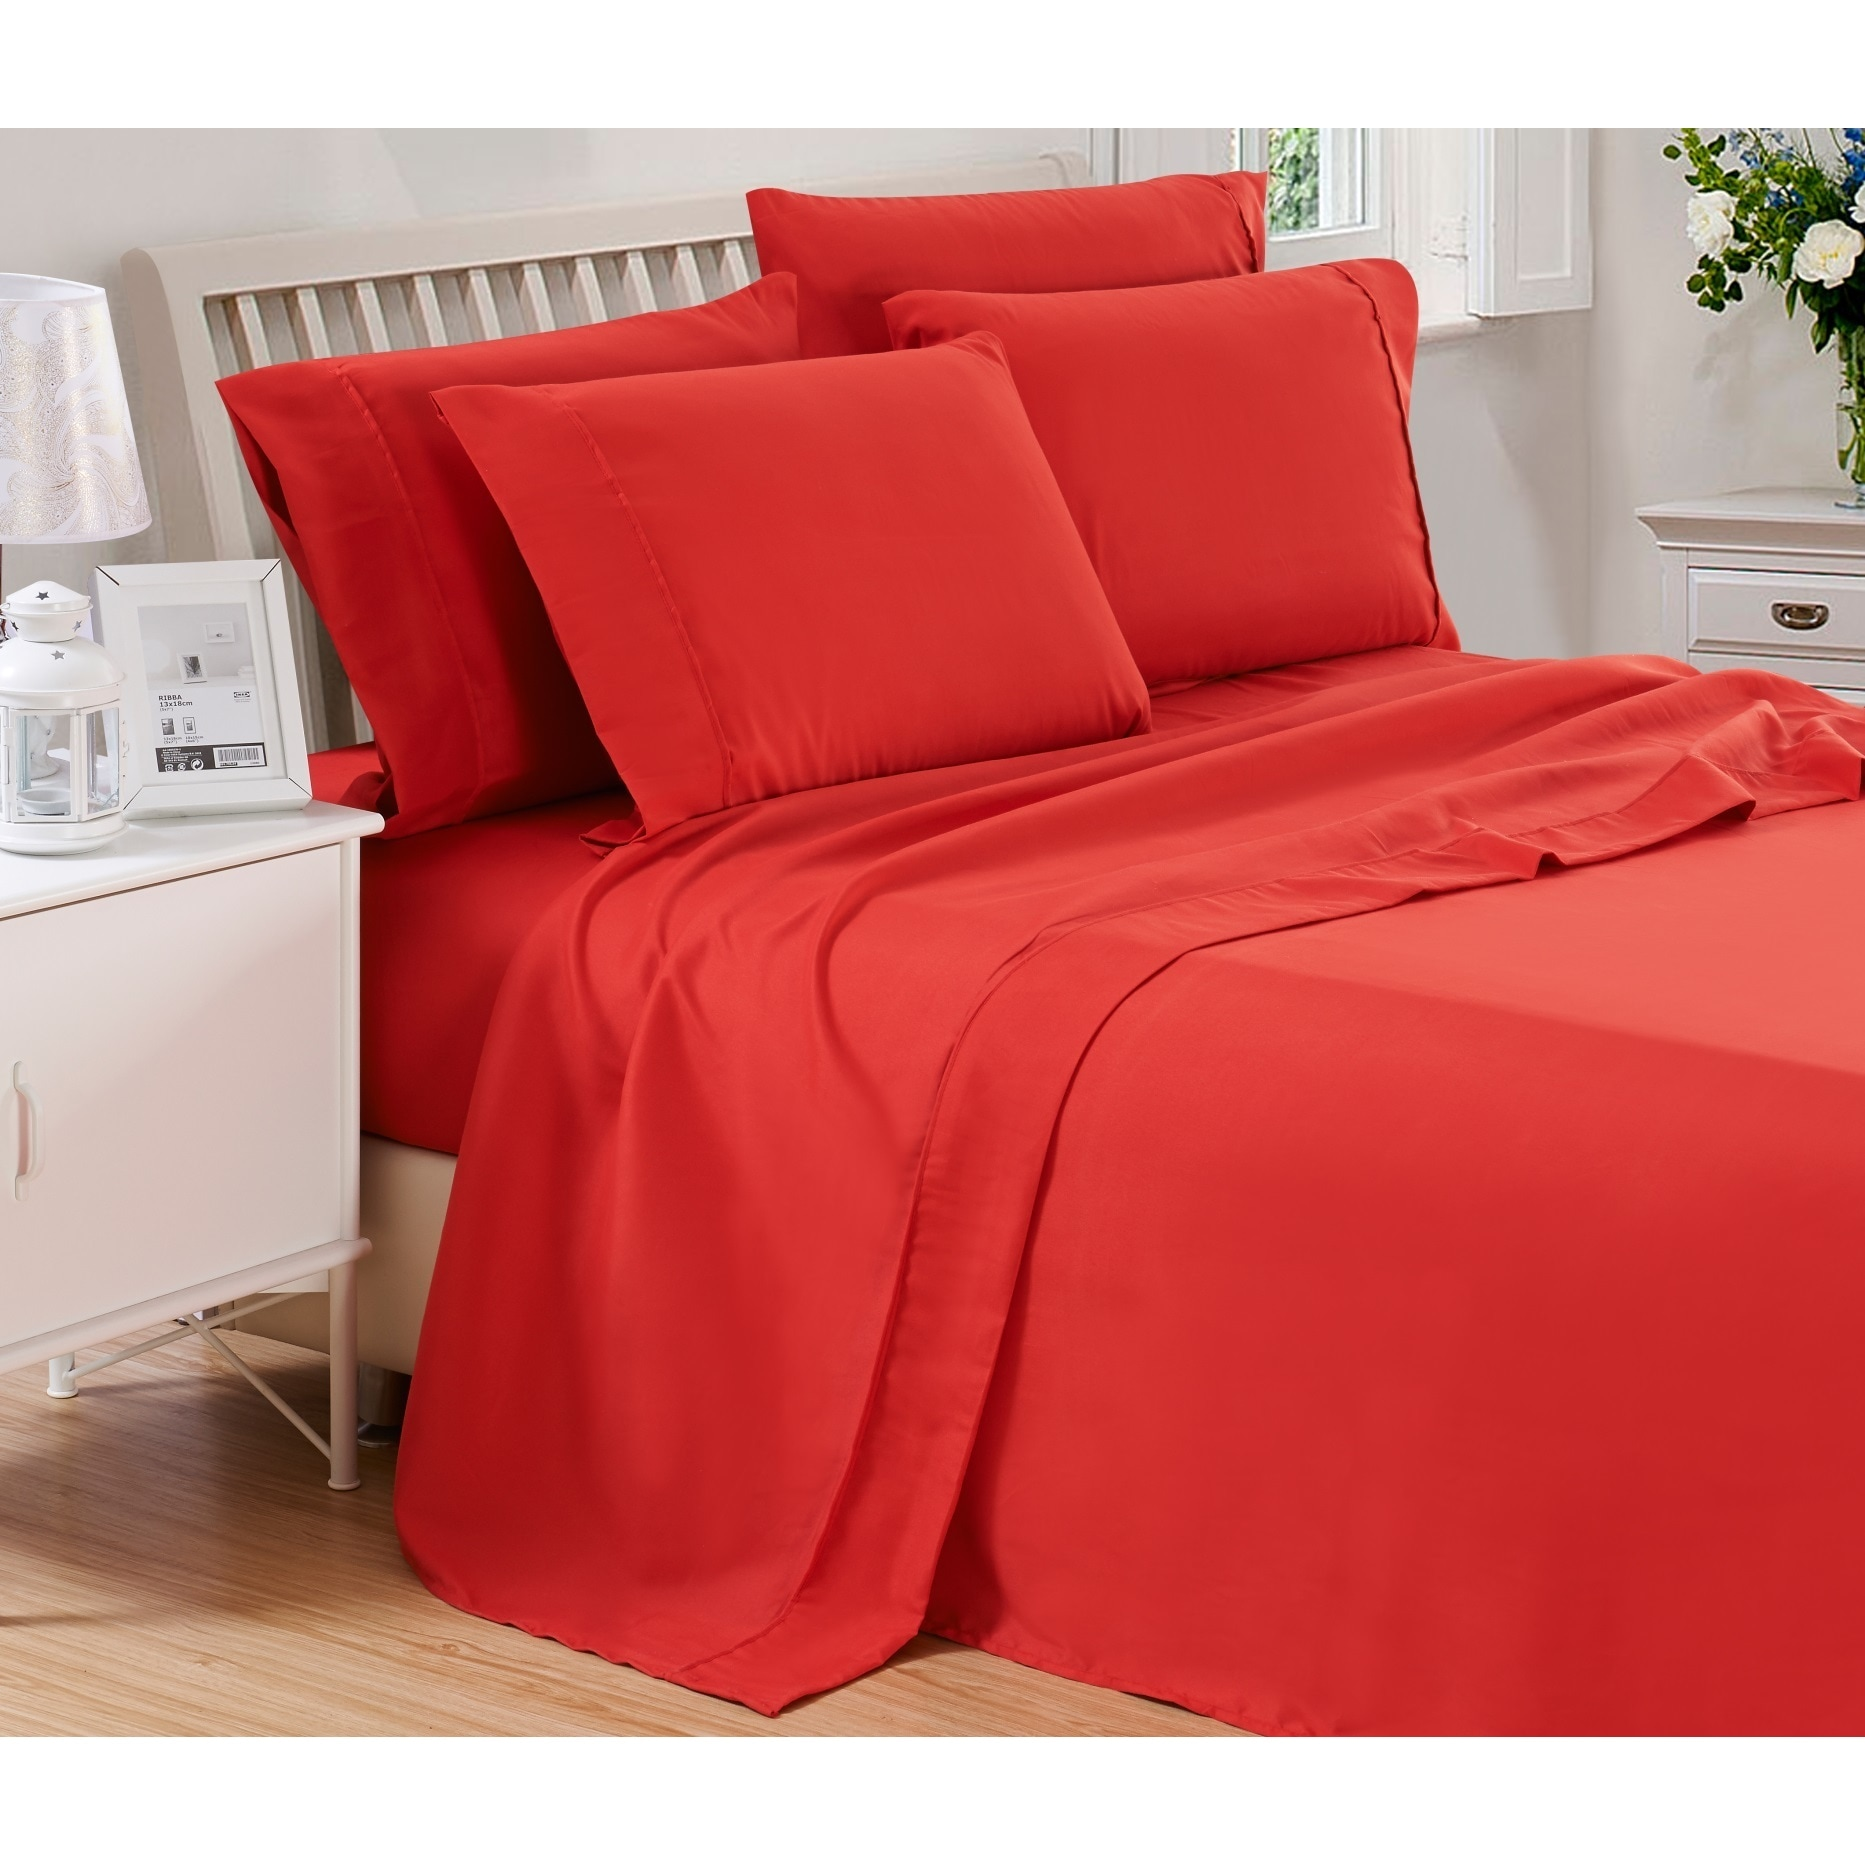 6 Piece Solid Brushed 1800 Series Bed Sheets Set Deep Pocket Stain Resistant Soft Extremely Durable Sheet Free Shipping On Orders Over 45